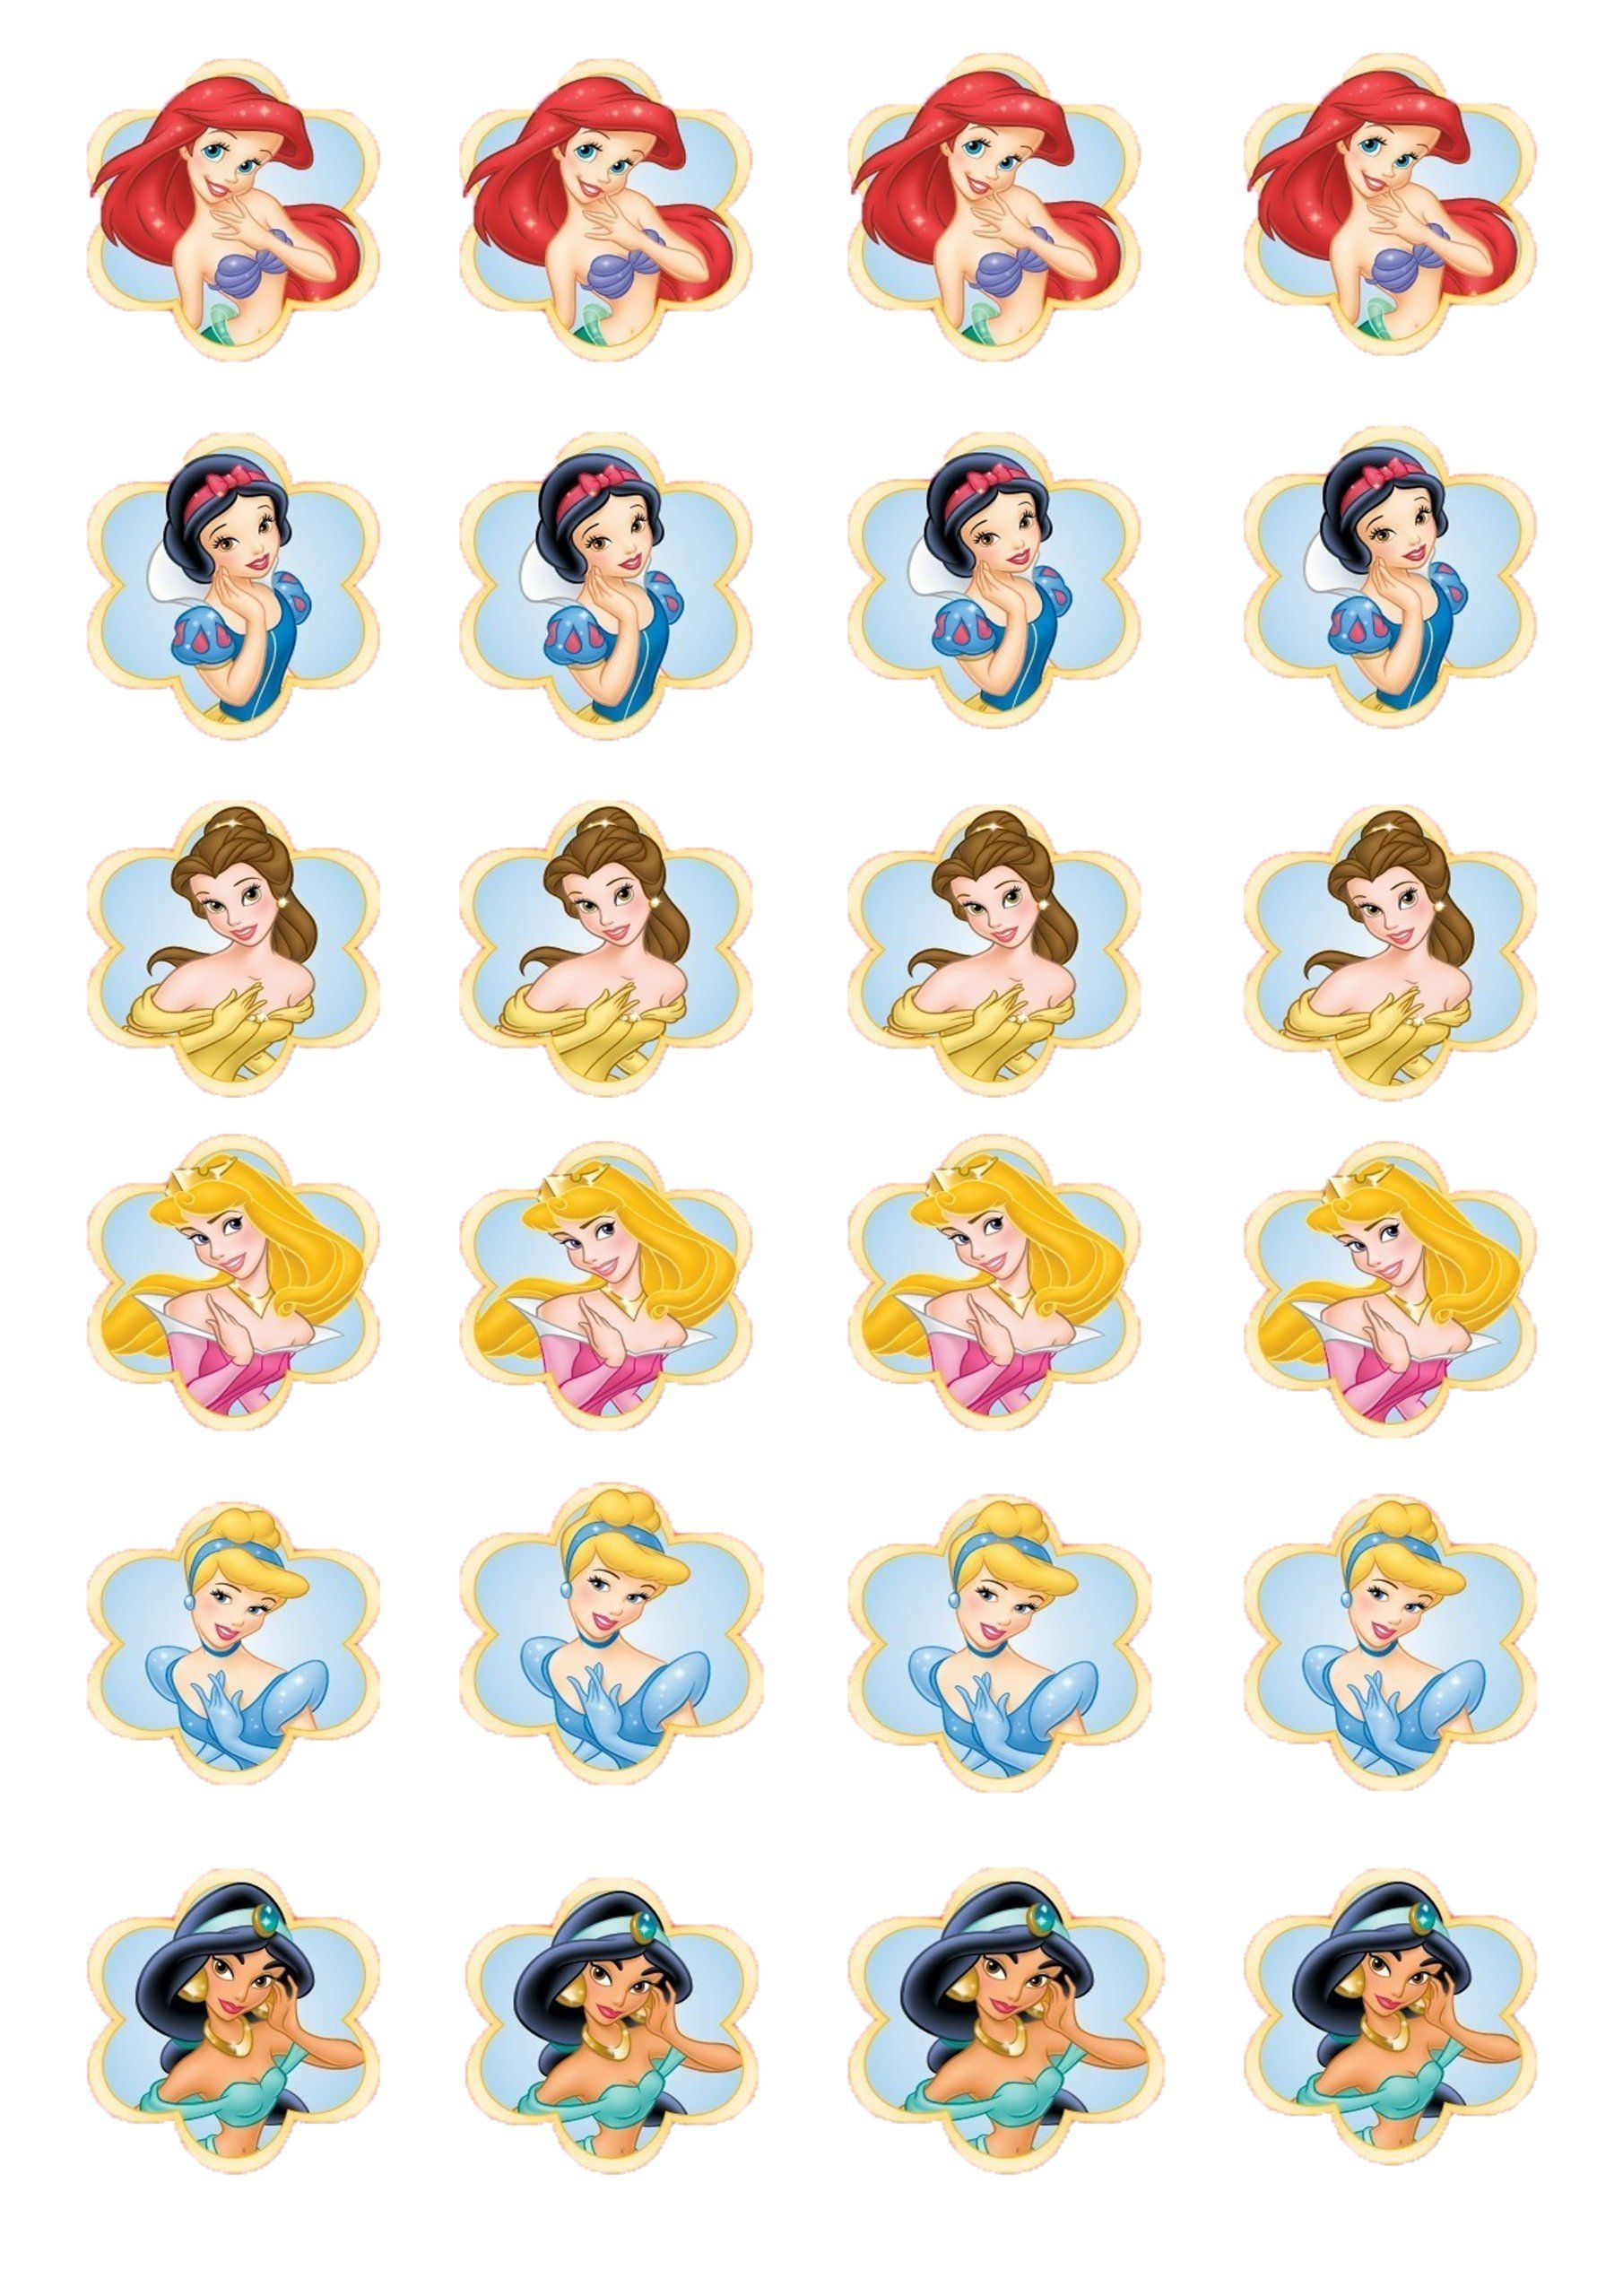 24 Disney Princesses Edible Cup Cake Topper Decorations By Topped Off